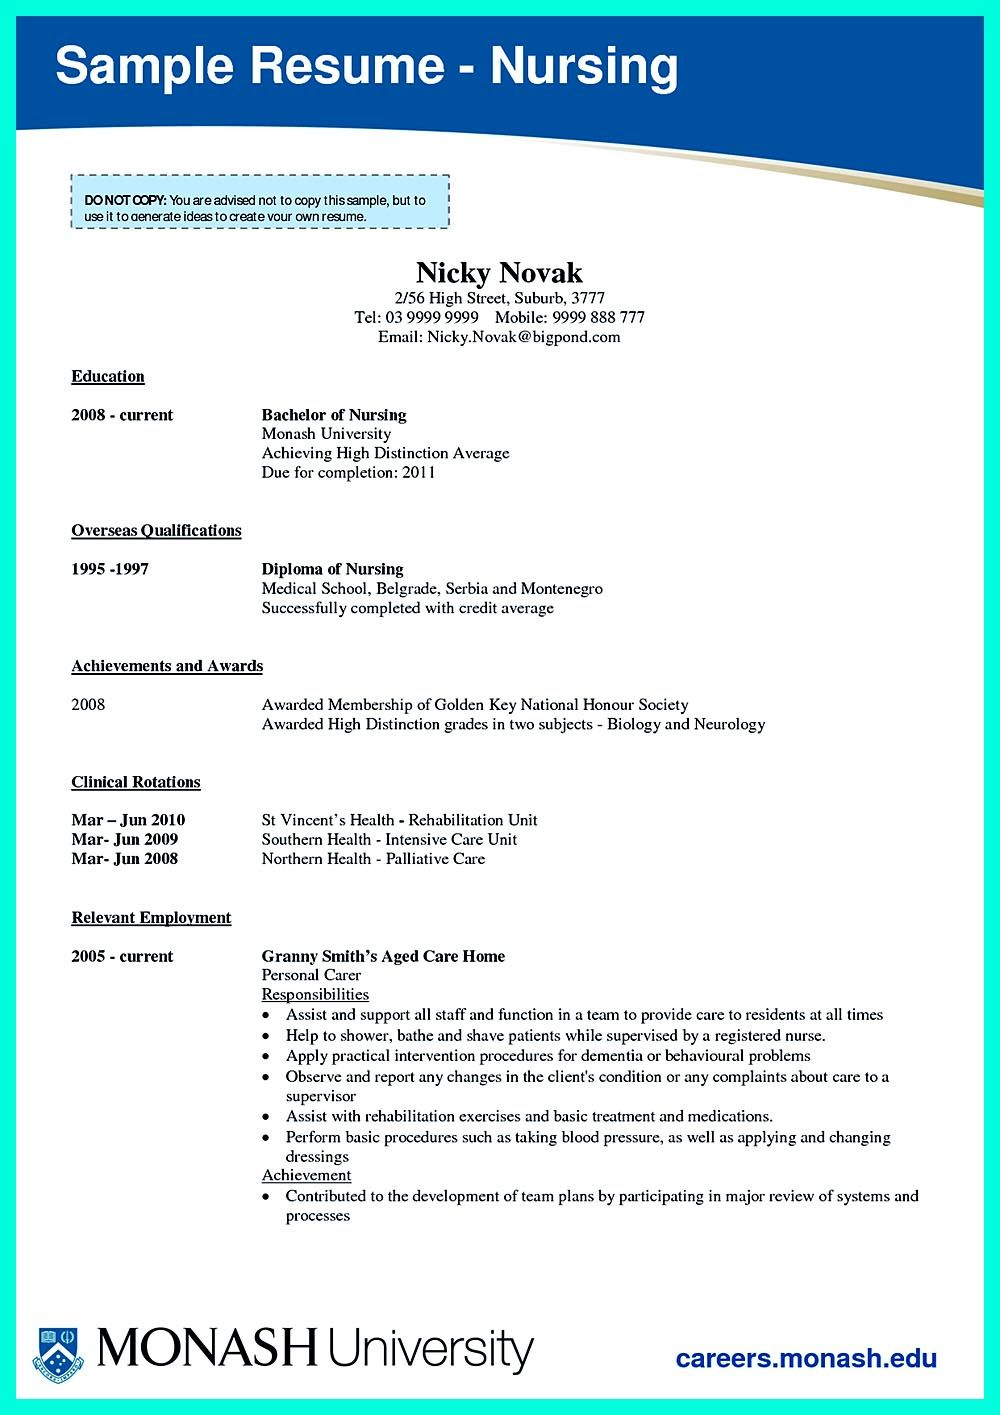 Critical Care Nurse Resume Has Skills Or Objectives That Are Written To  Document Clearly About Your Skills. The Resume Also Displays Your  Experience I